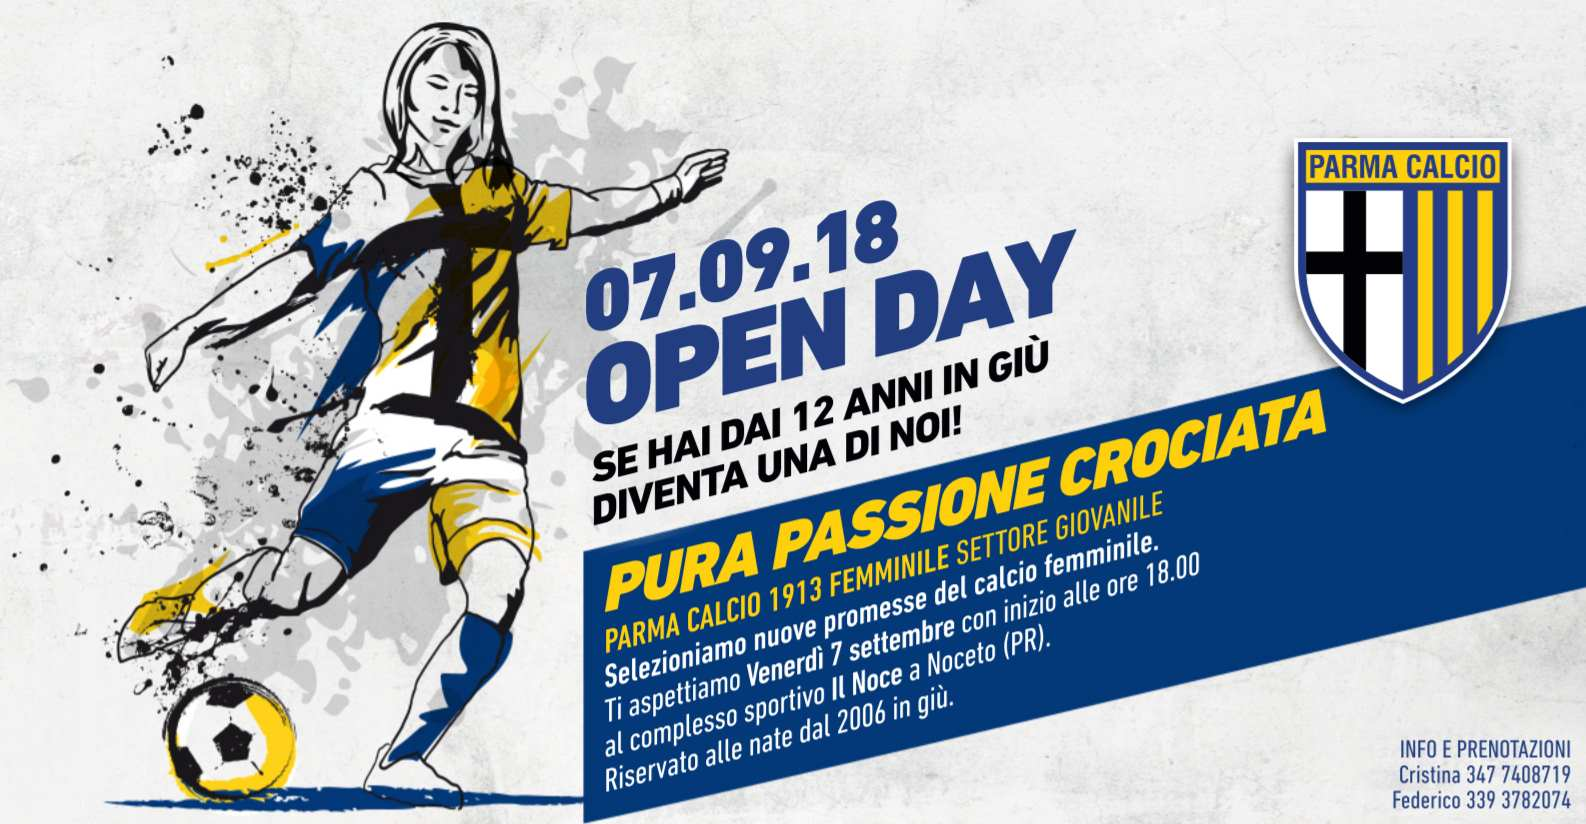 open day 07.09.2018